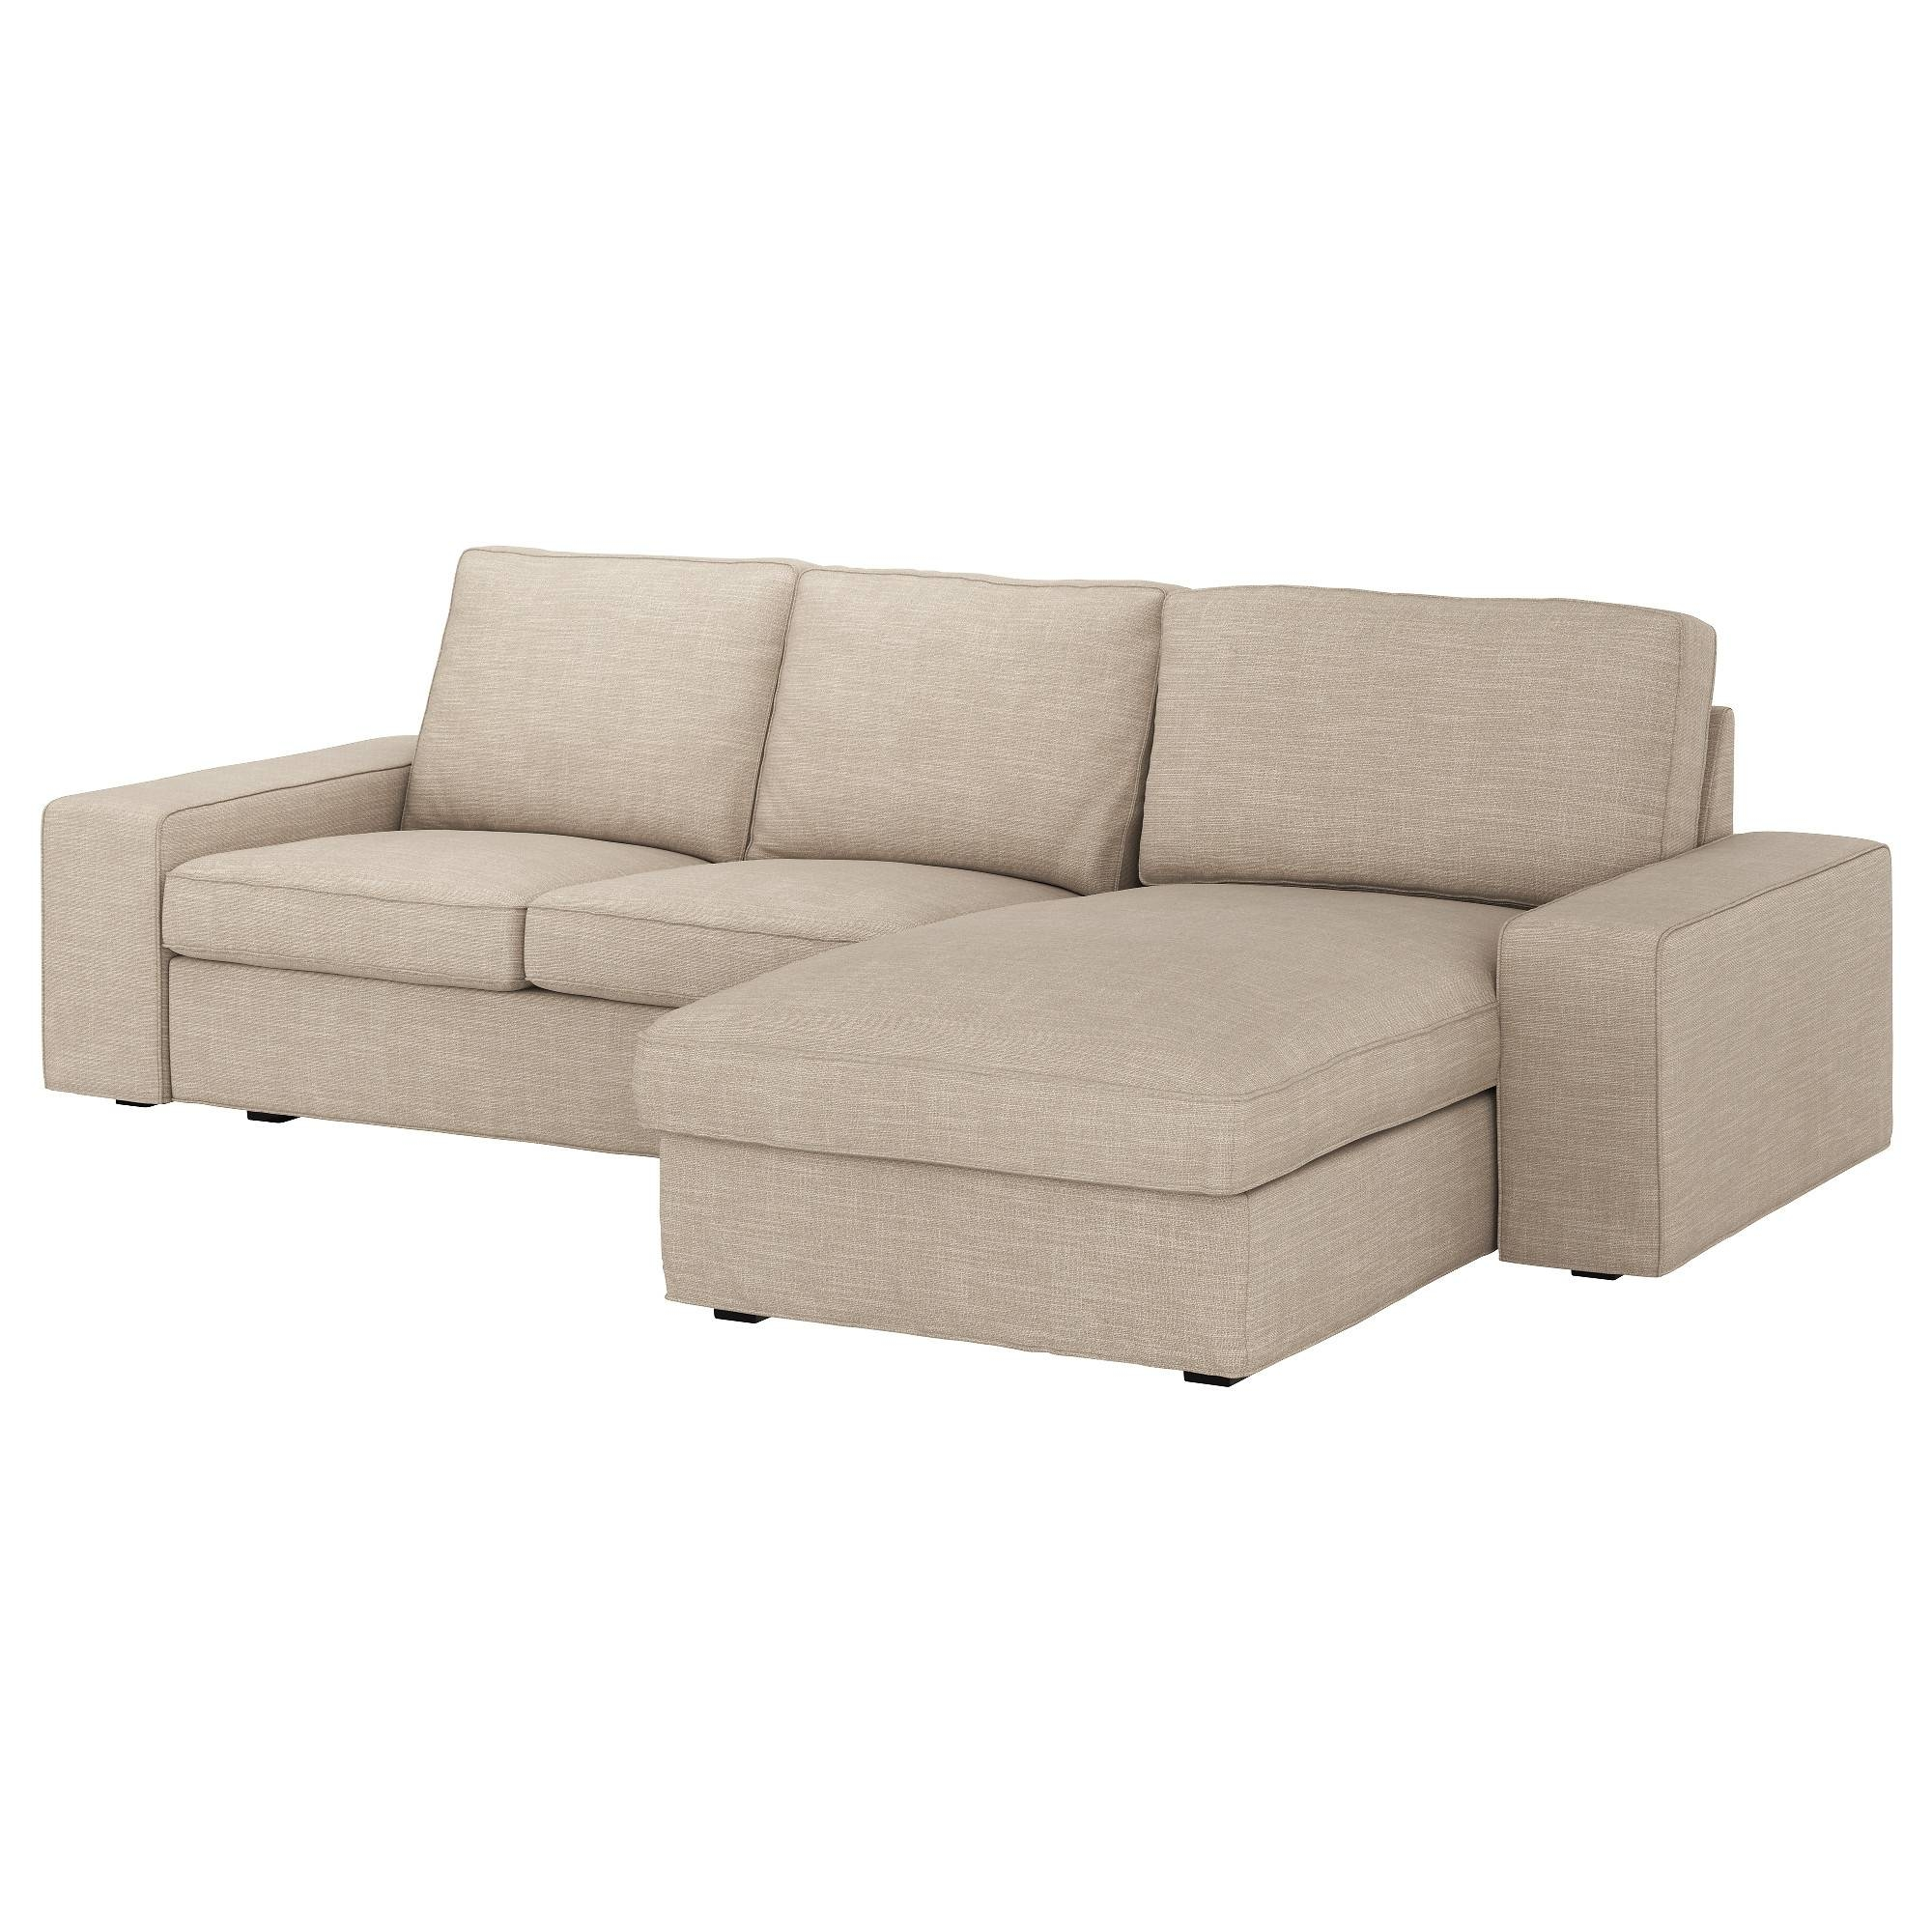 Kivik Two-Seat Sofa And Chaise Longue Hillared Beige - Ikea within Ikea Chaise Lounge Sofa (Image 21 of 30)